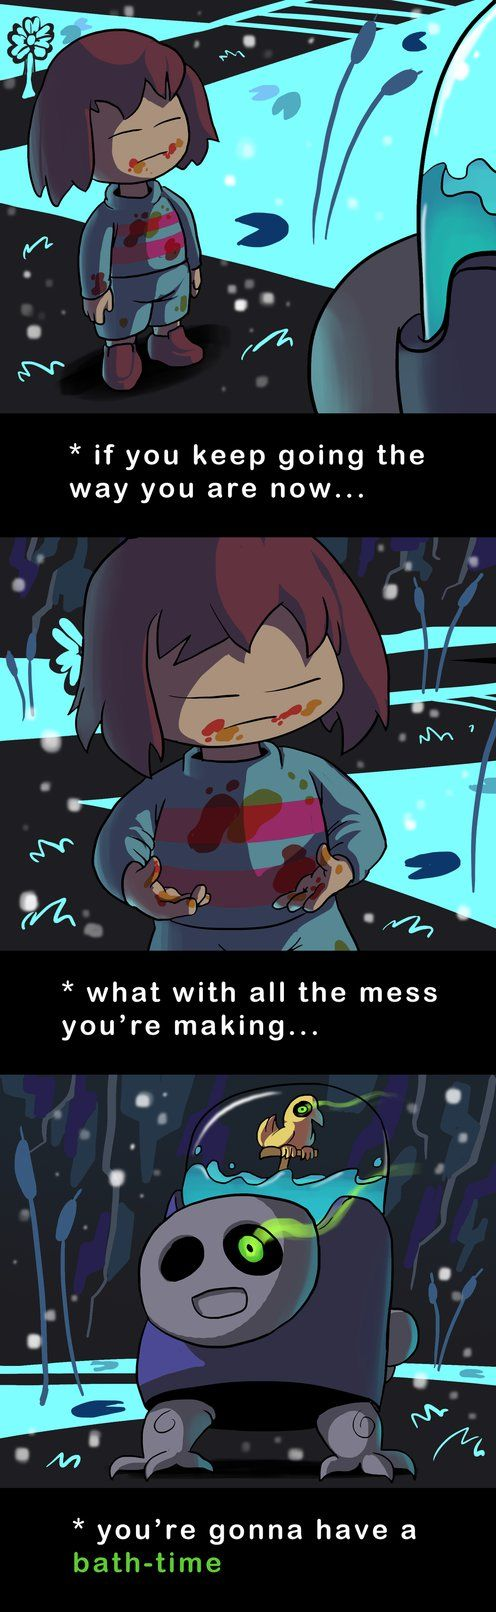 Undertale Green Means Clean By Docwario Undertale Funny Undertale Undertale Memes